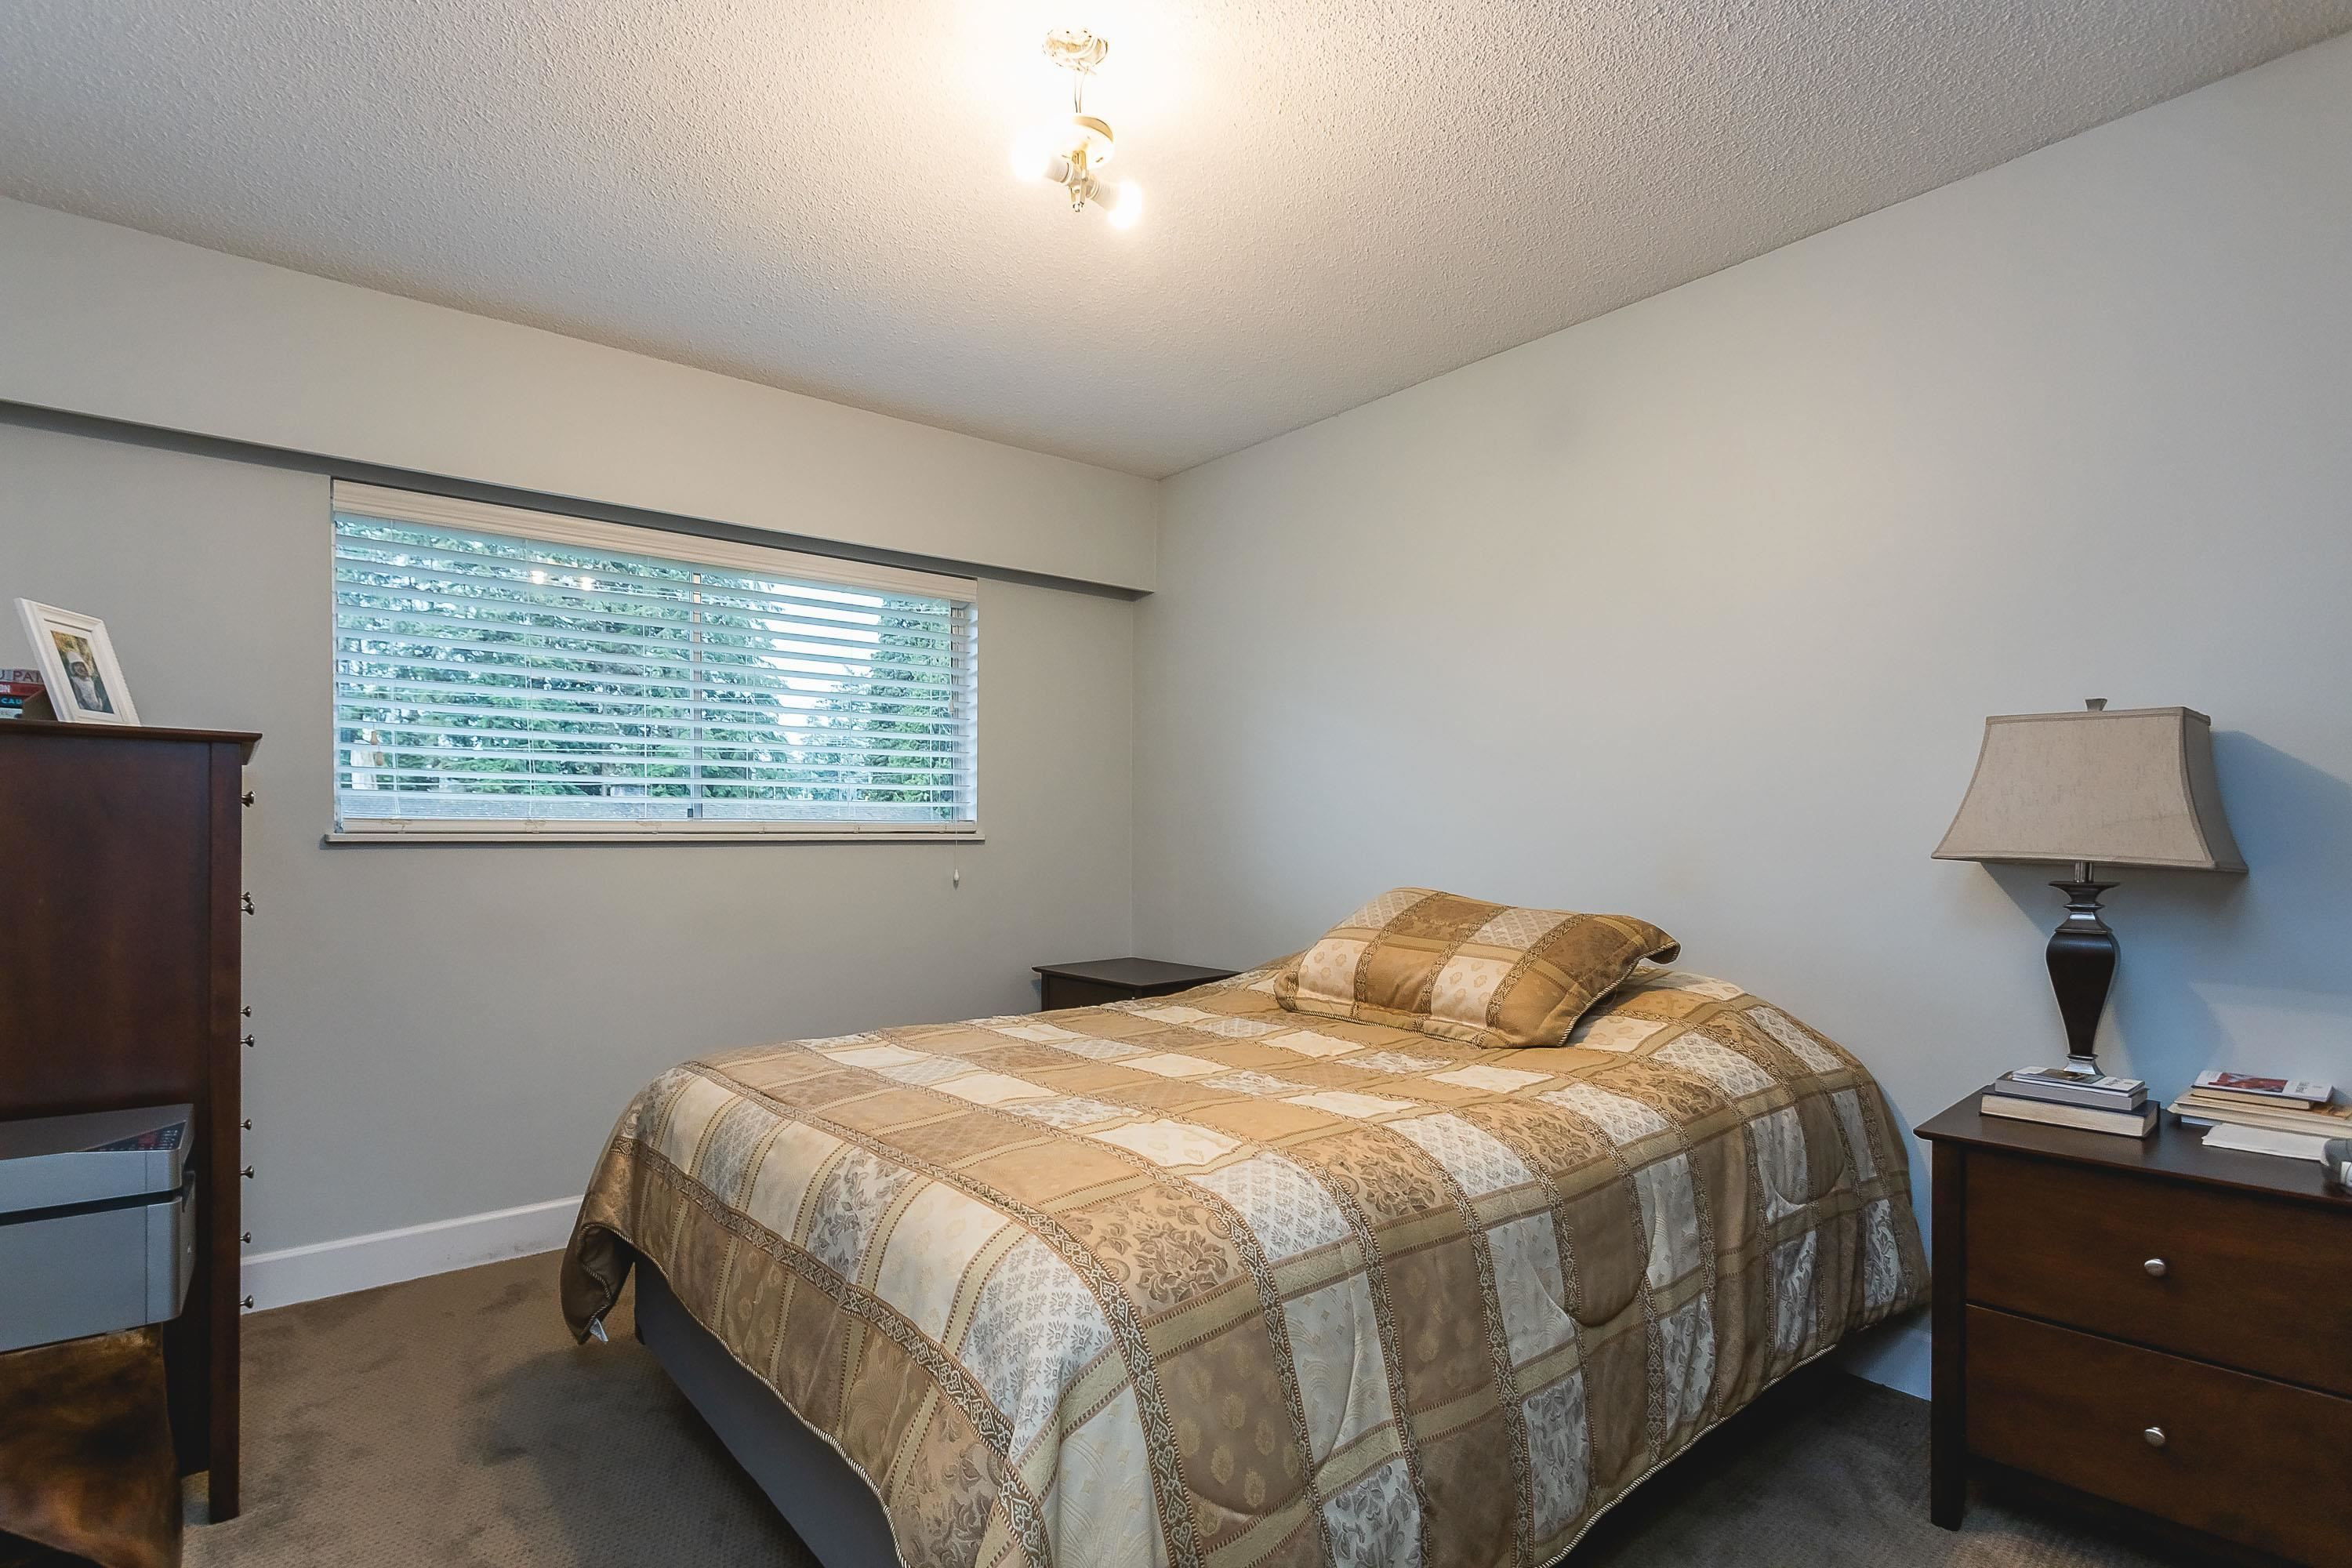 Photo 3: Photos: 3260 ULSTER Street in Port Coquitlam: Lincoln Park PQ House for sale : MLS®# R2613283